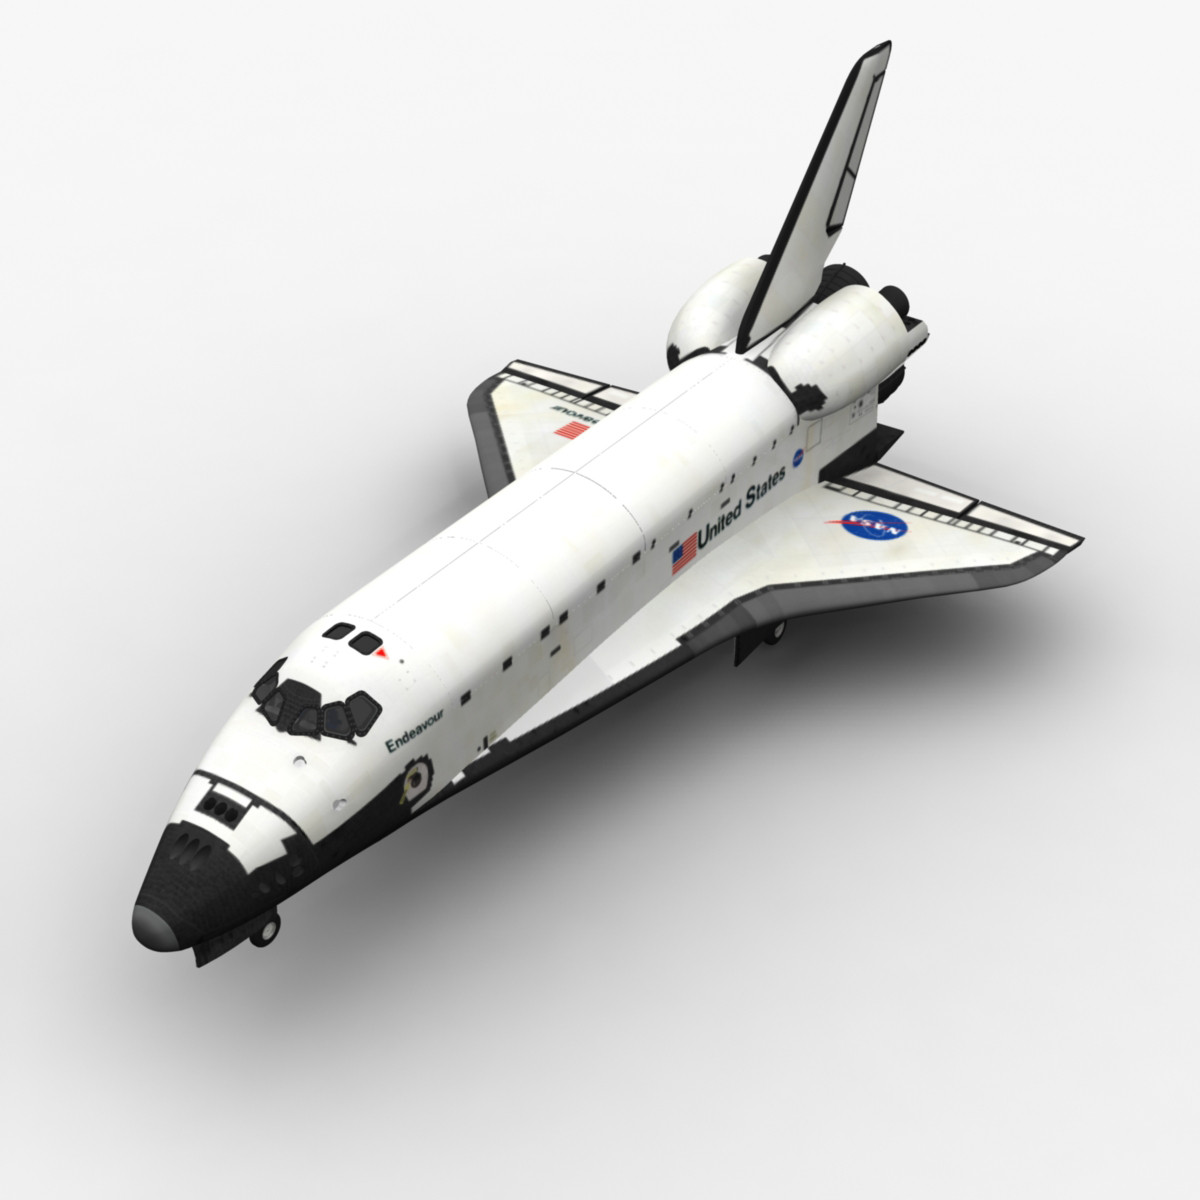 2014 NASA Space Shuttle Model - Pics about space